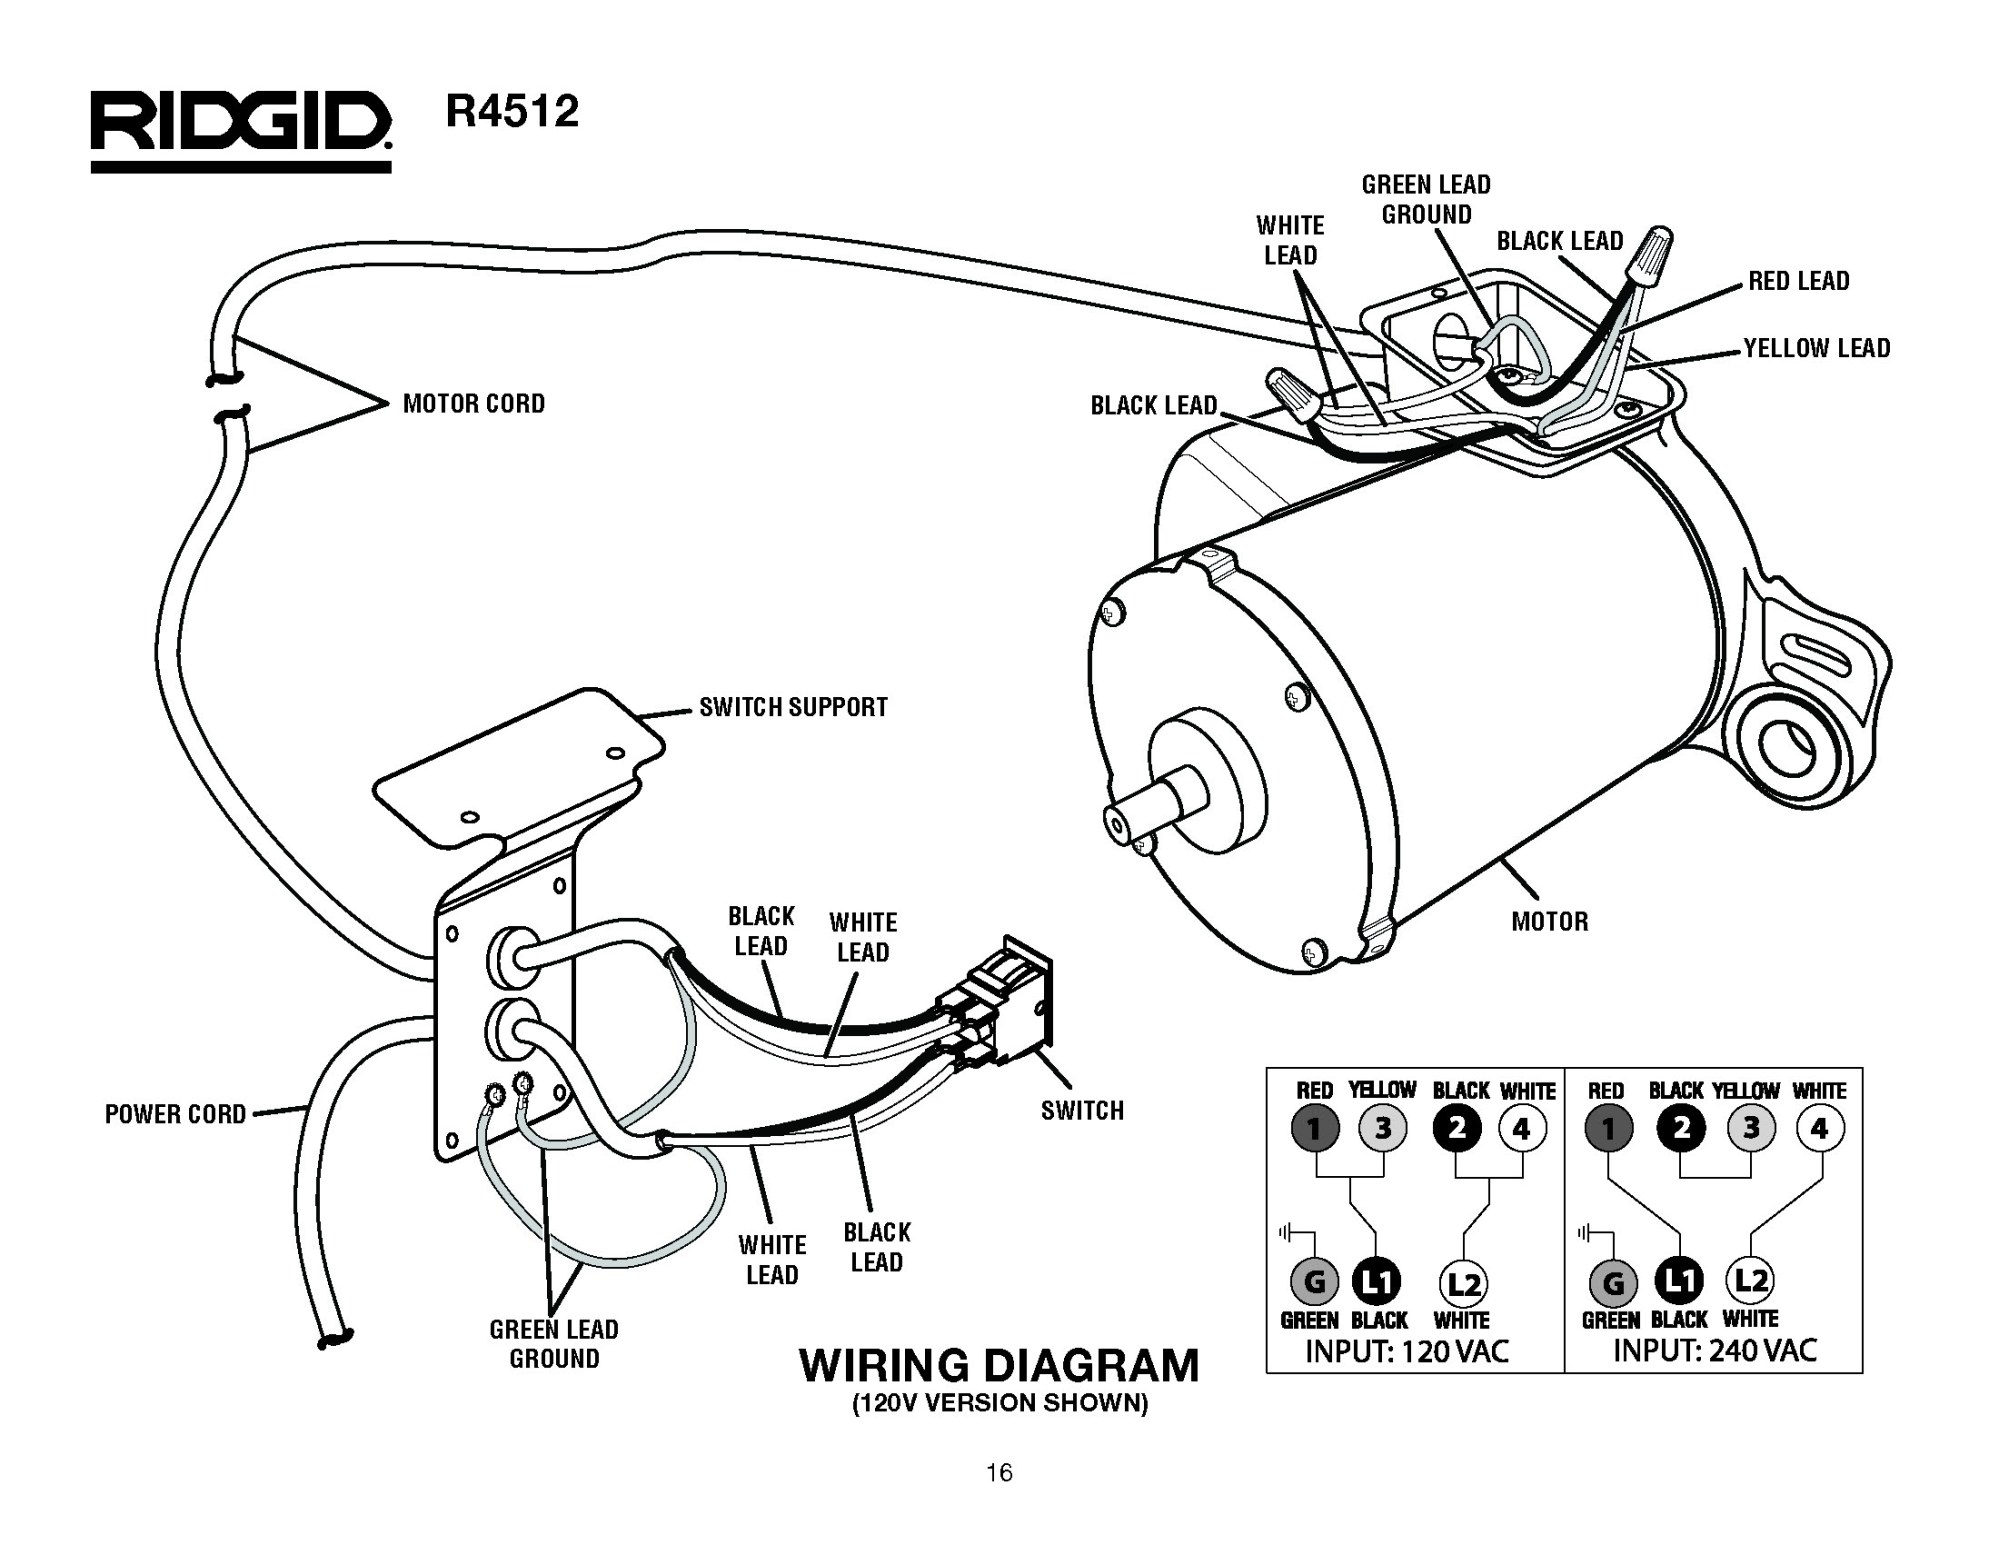 hight resolution of ridgid table saw switch wiring diagram 38 wiring diagram delta table saw wiring diagram ridgid r4510 table saw wiring diagram